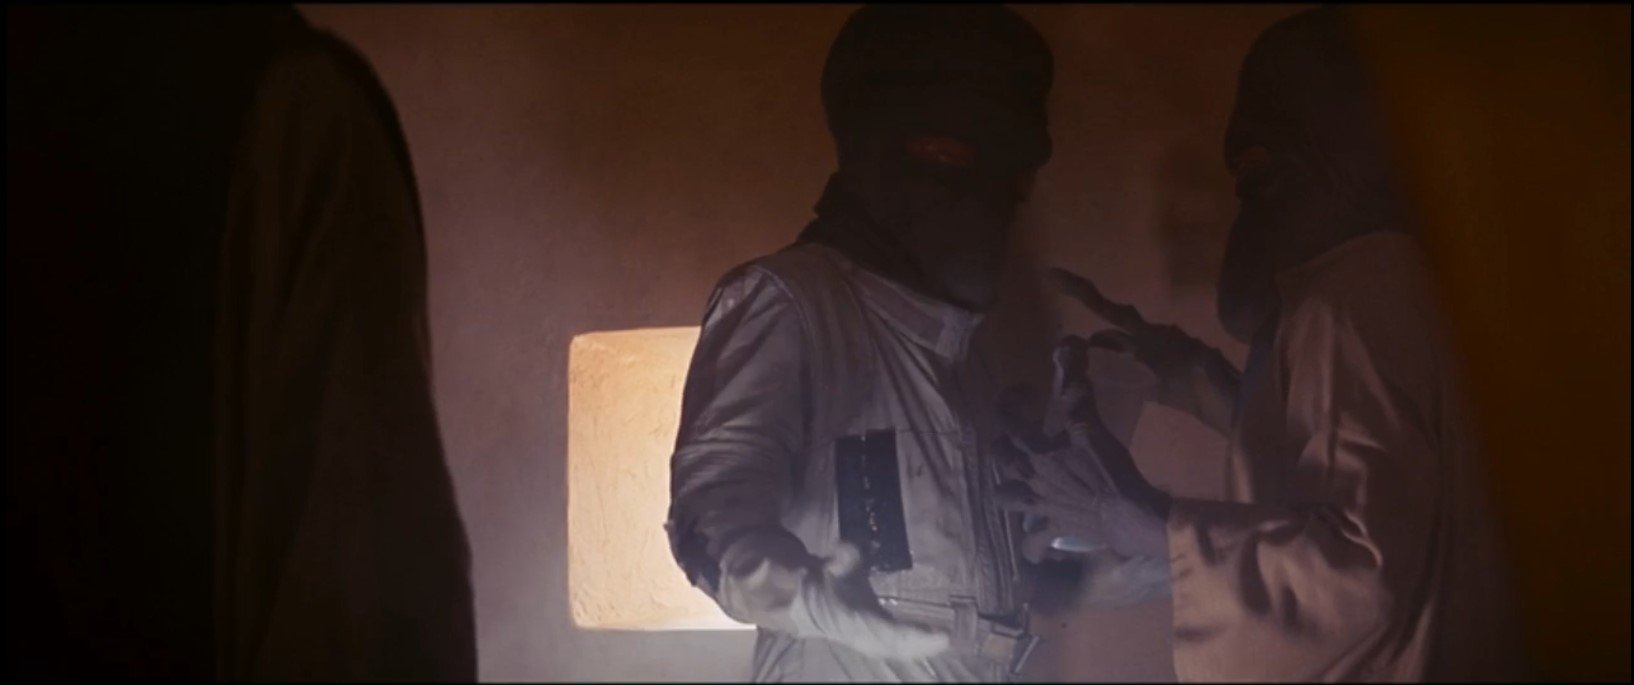 Duros aliens in Cantina, Star Wars A New Hope wearing space suit prop